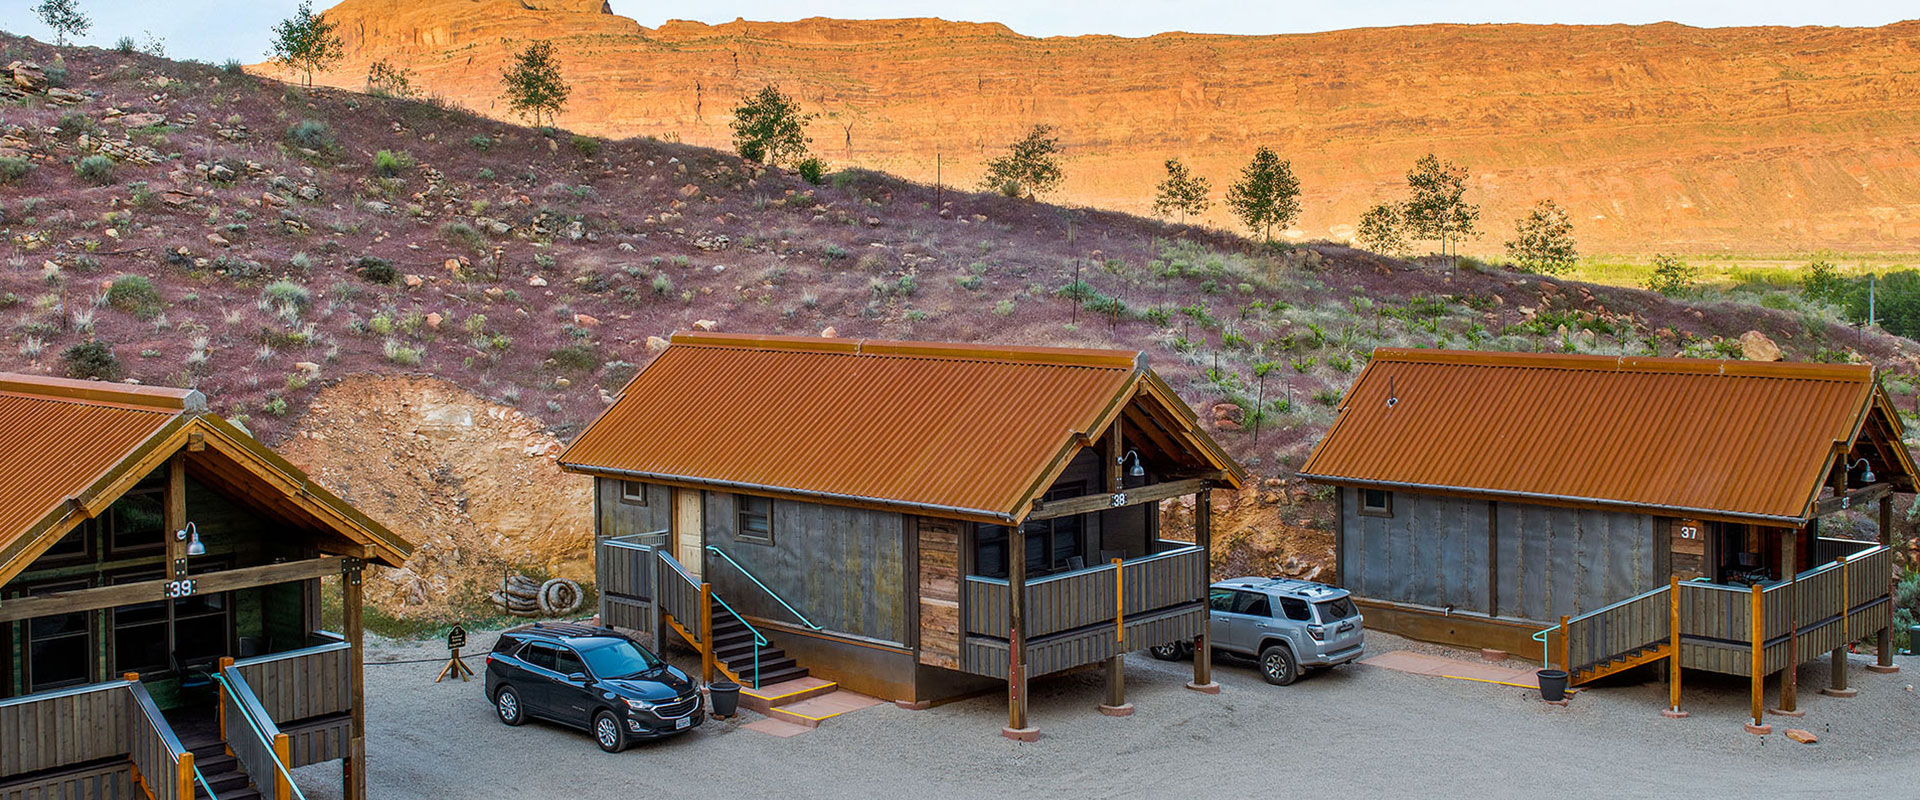 A shallow stream, trees and an outdoor picnic table are found in the yard space of townhouse units at Moab Spring Ranch.